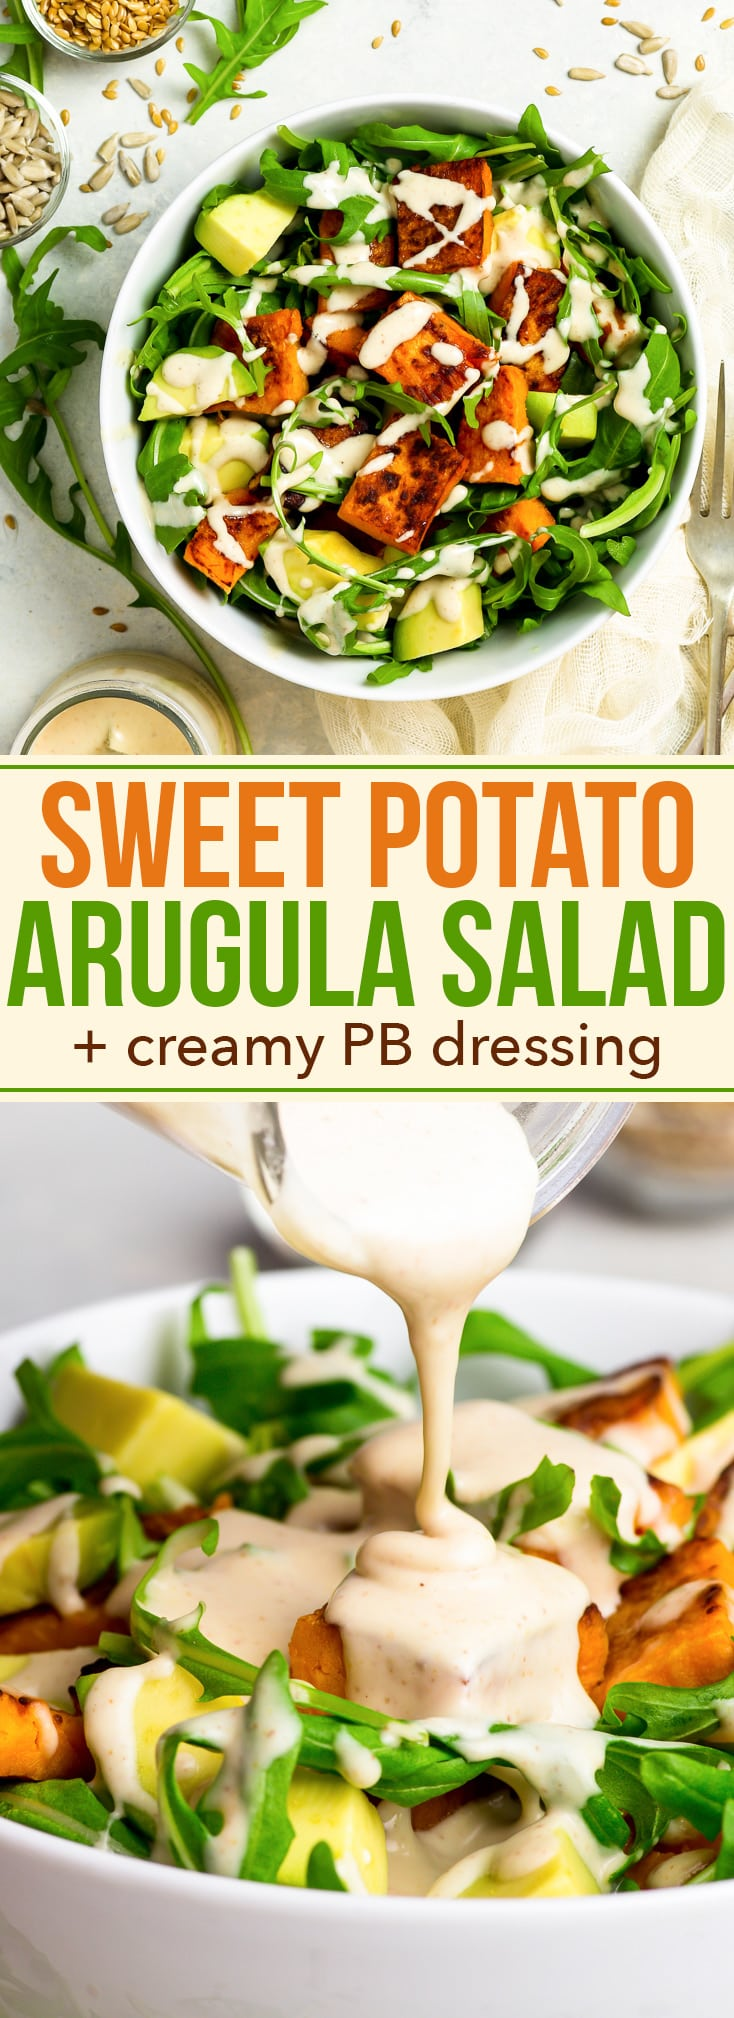 """15-Minute Sweet Potato & Arugula Salad with Avocados + Creamy Peanut Butter Dressing - This sweet potato & arugula salad is the perfect quick and healthy mid-week lunch, that you can prepare in just 15 minutes! With a hack to make the most amazing """"roasted"""" sweet potatoes (in only 10 minutes) and with the creamiest 4-ingredient peanut butter dressing. Gluten free recipe. Healthy recipe. Salad recipe. Salad dressing recipes. Vegan lunch. Easy salad recipe. #healthyrecipes #healthyeating #salad"""